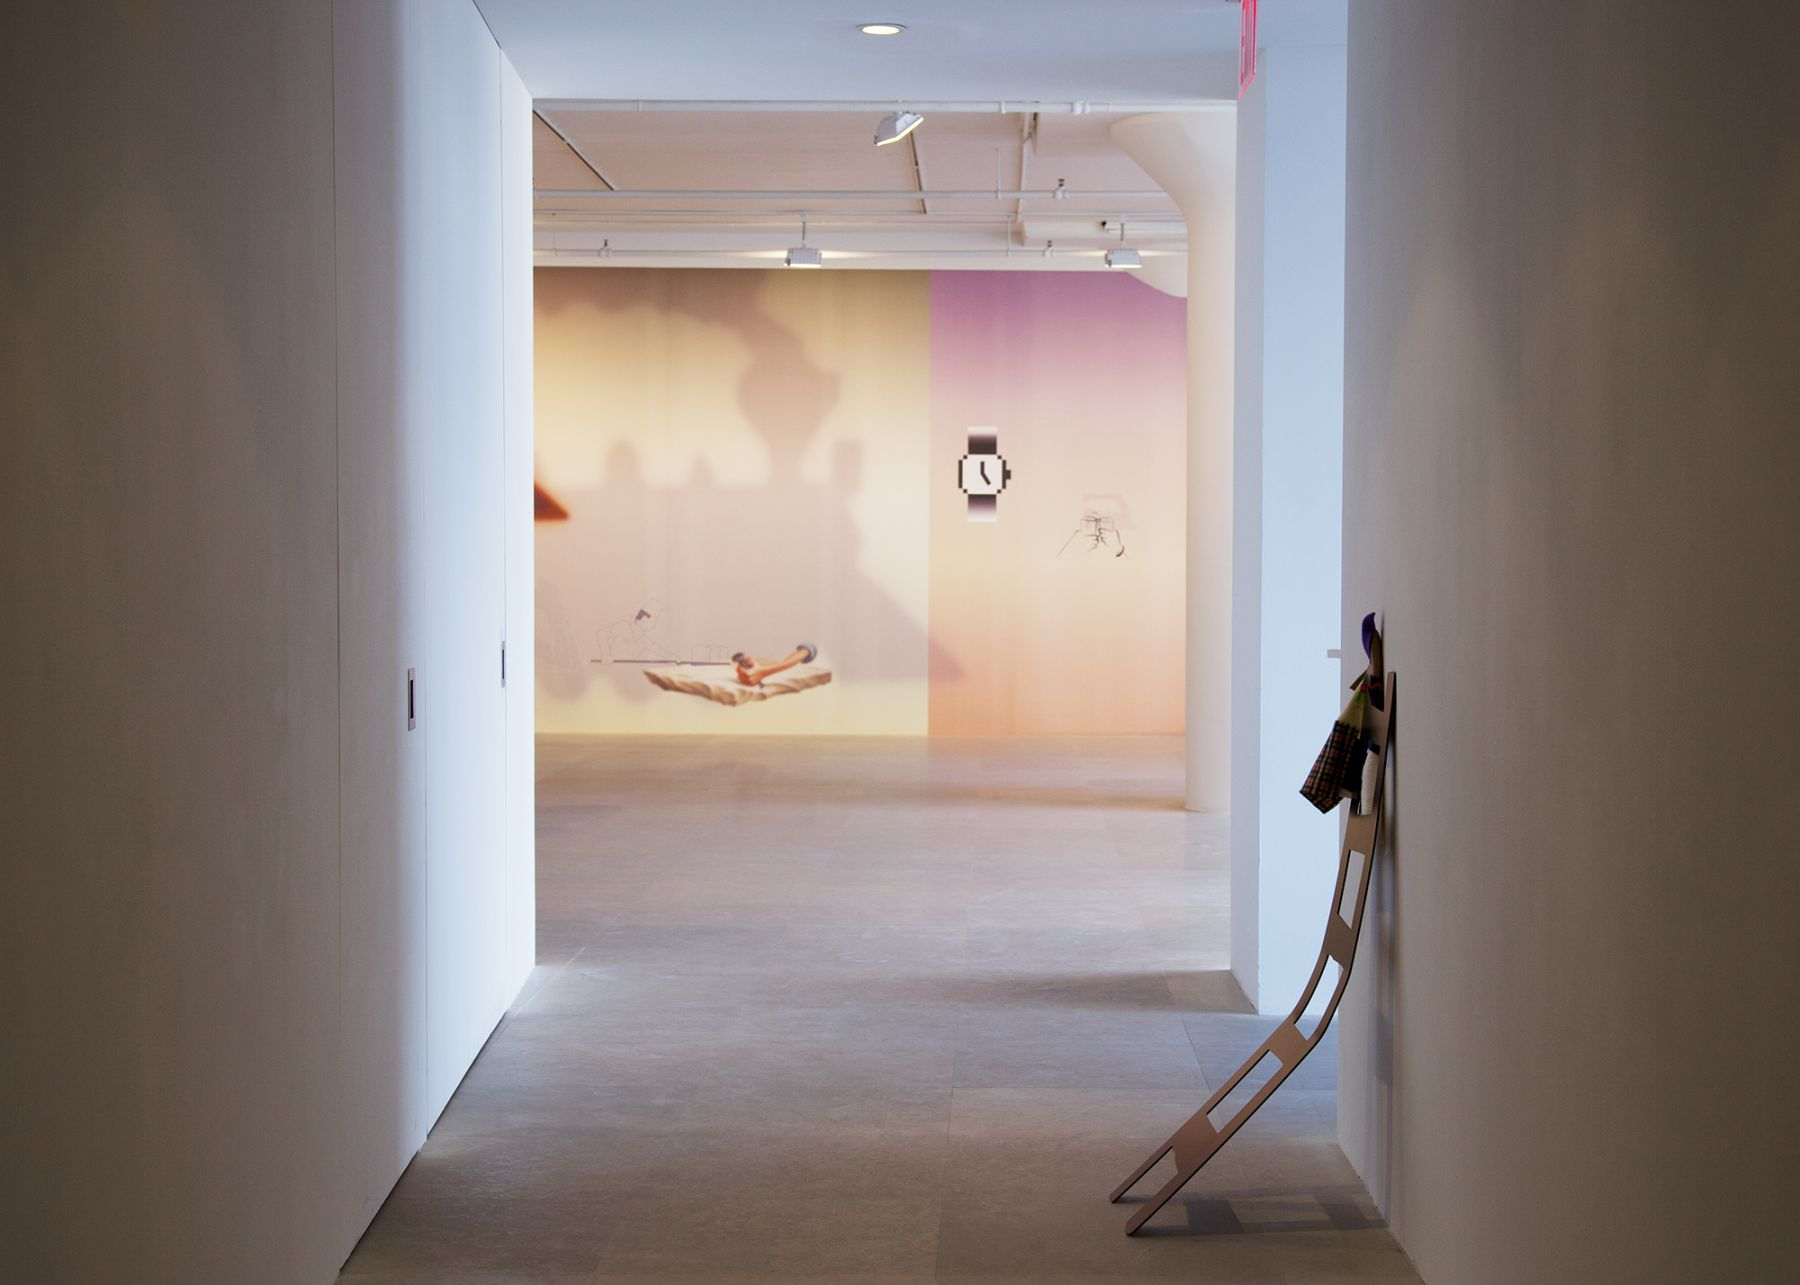 Installation view, Hasta Mañana, Greene Naftali, New York, 2011